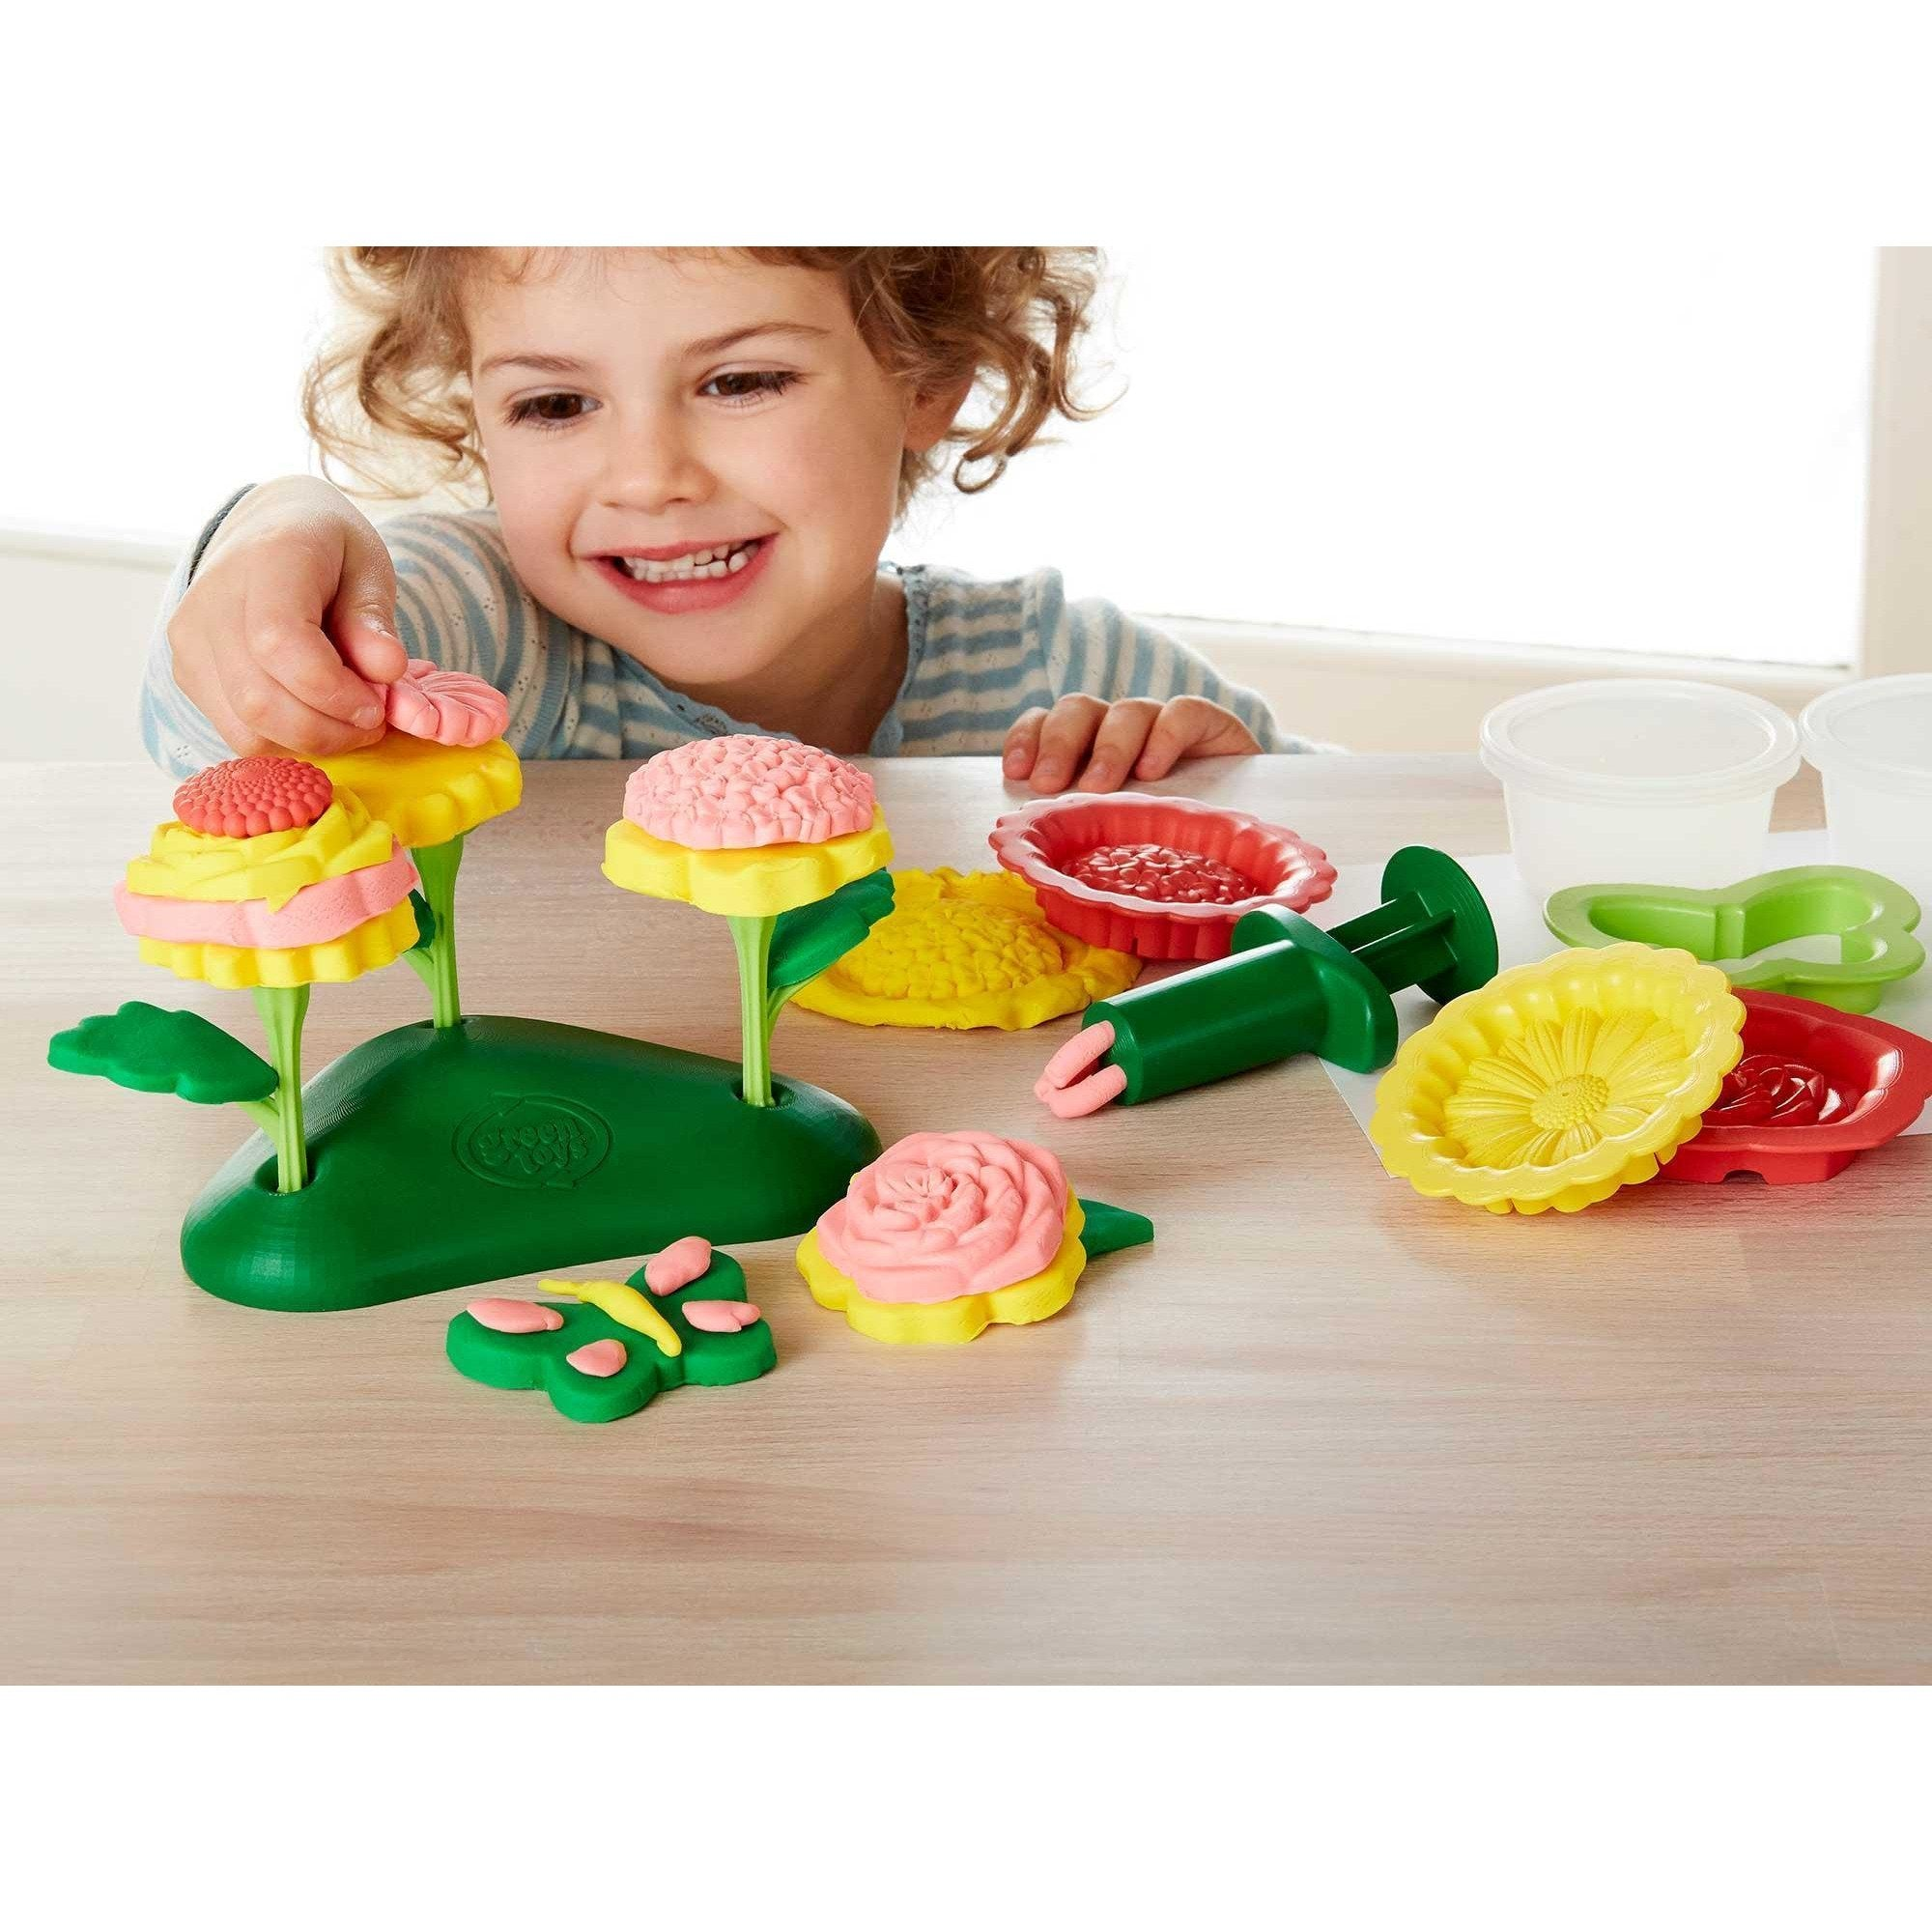 Green Toys To Play Flower Maker Dough Set kids-children-mums-parenting-toyshop-fun kids-children-mums-parenting-toyshop-fun